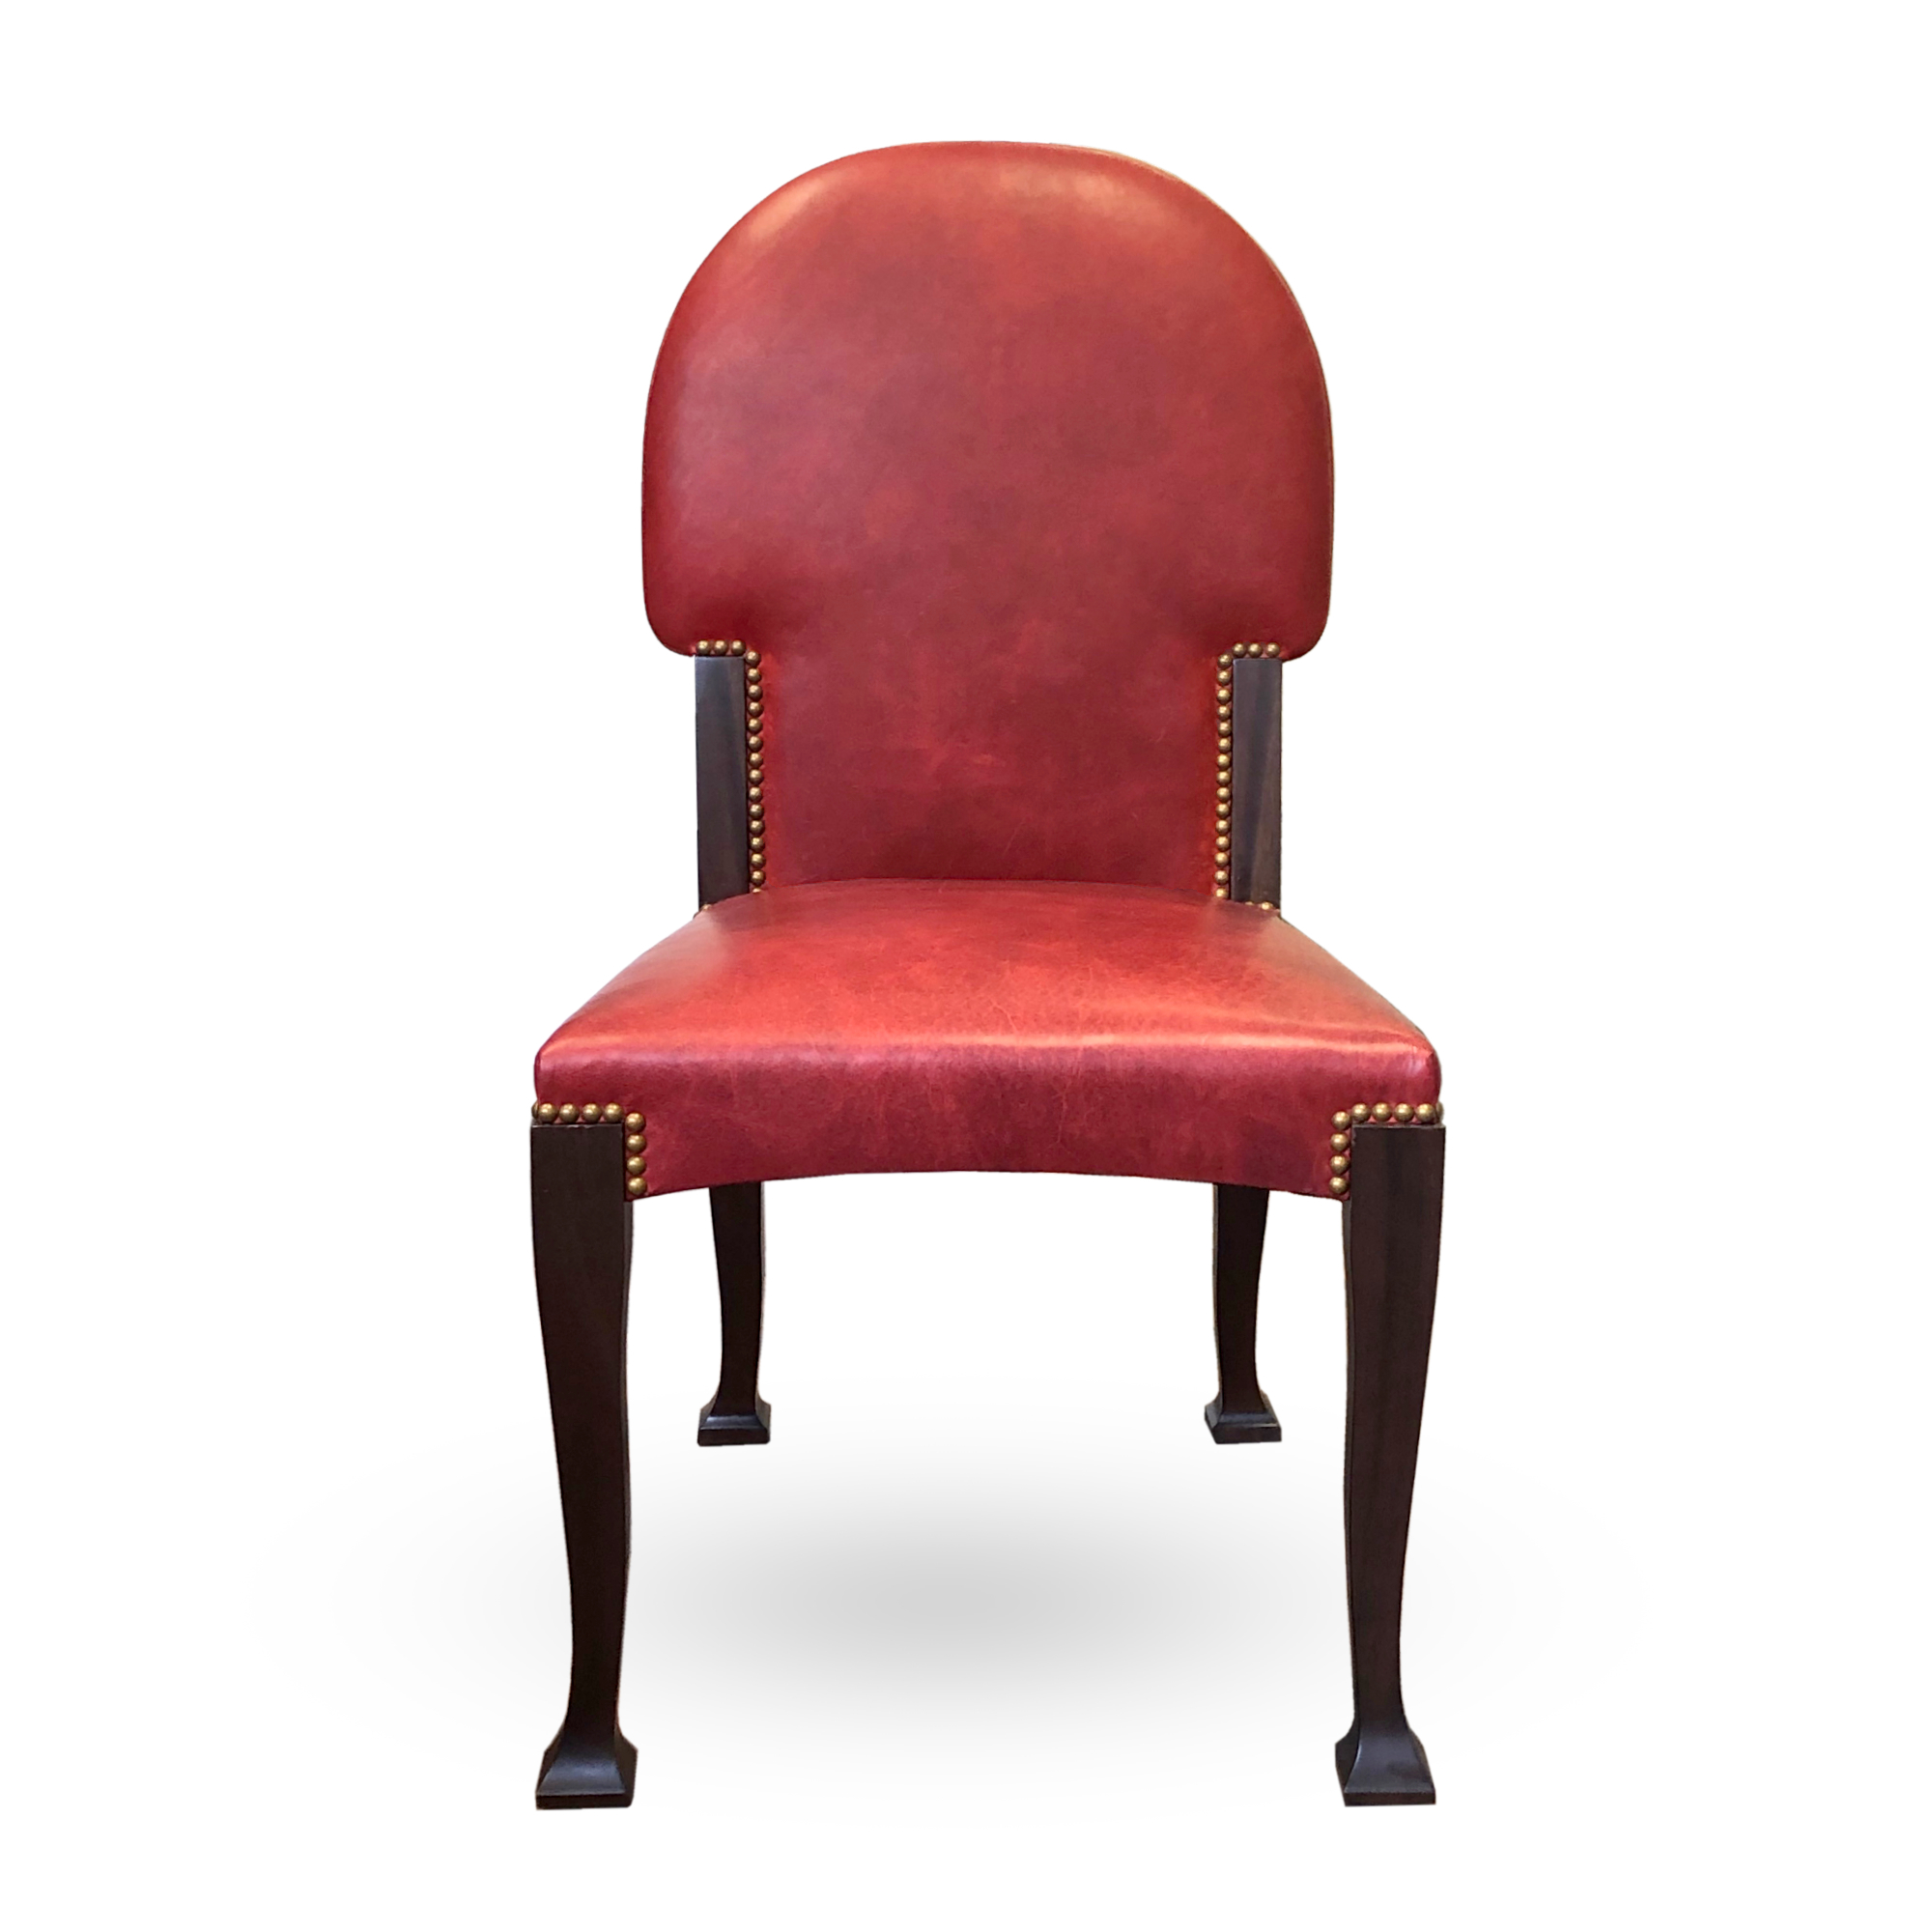 Art-Nouveau-Side-Chair-Carved-Legs-Dining-Leather-Upholstered-Nail-Head-Trim-Solid-Wood-Victoria-&-Son-Custom-Furniture-Bespoke-Antiques.jpg